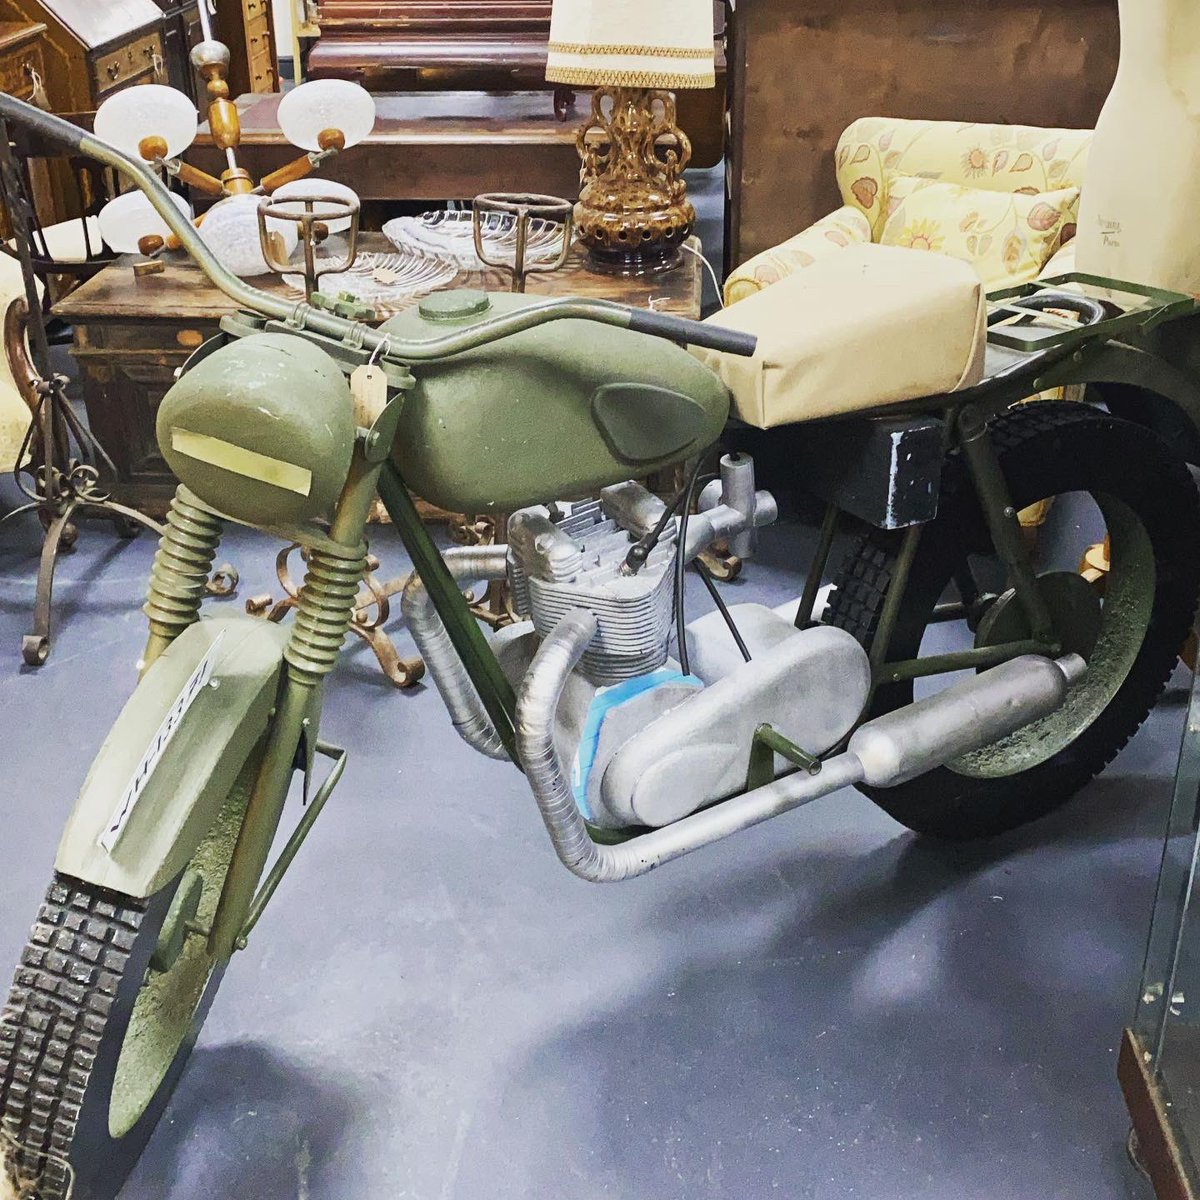 This needs a second glance to spot it's just a stage prop. #thegreatescape #motorbike #stageprop #motorcycle #astraantiquescentre #stevemqueen #richardattenborough #jamesgarner #hemswell #lincolnshire #film https://t.co/pvDyAW1m1T